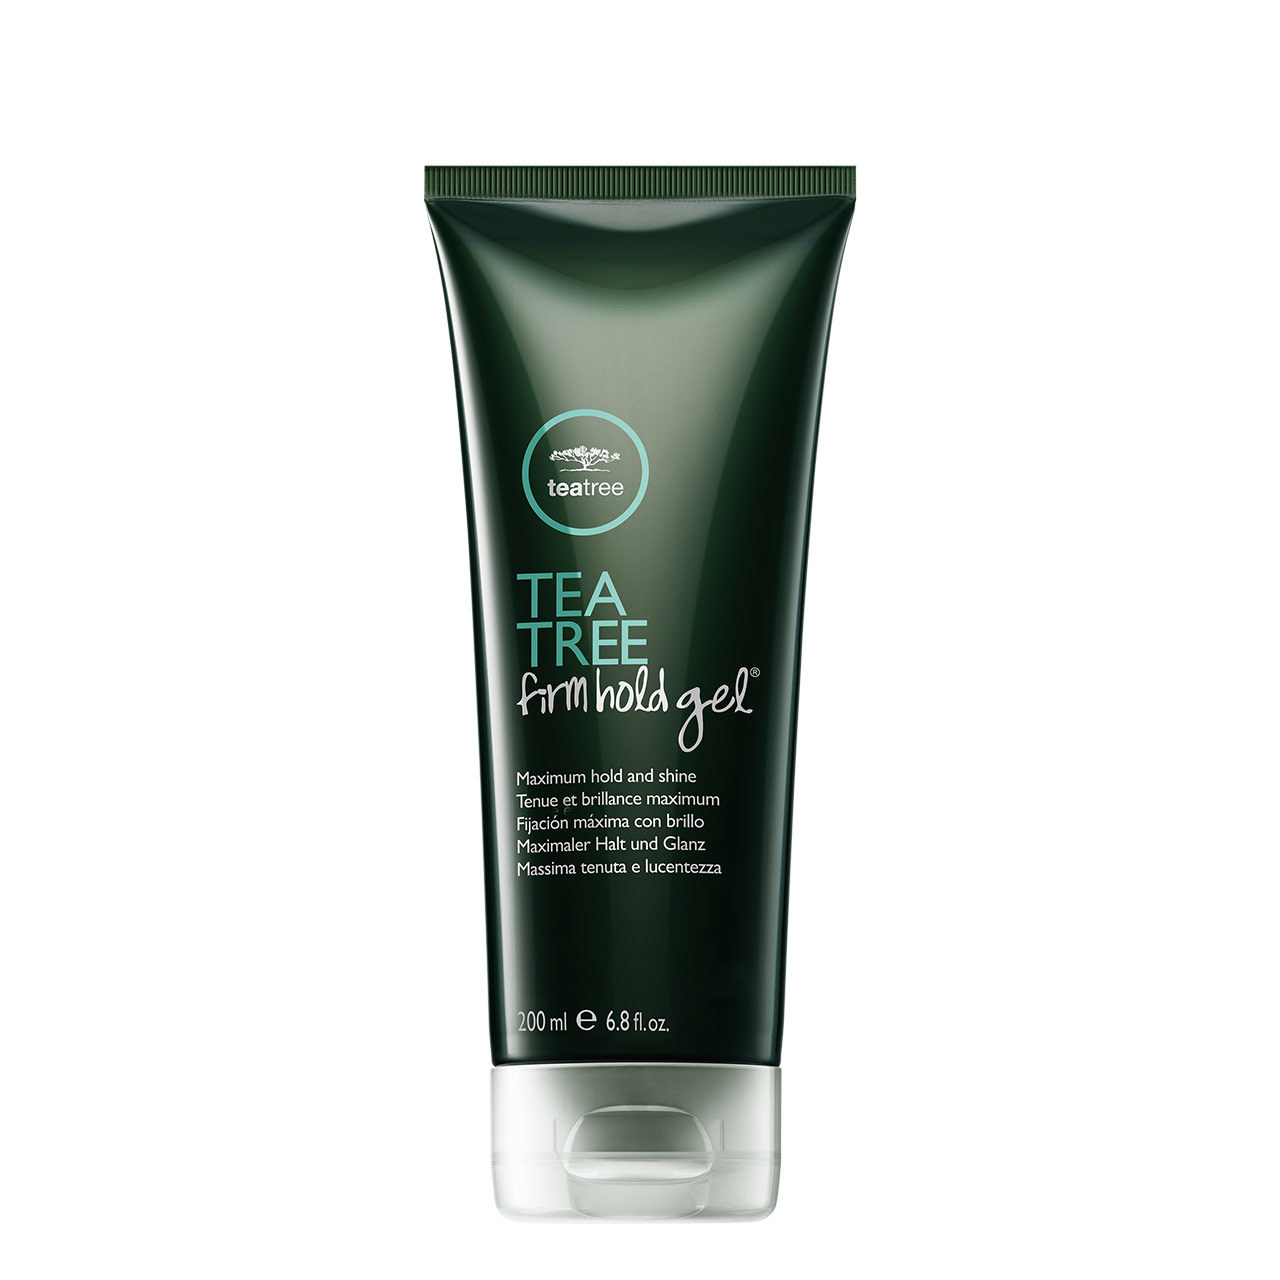 Tea Tree Firm Hold Gel by Paul Mitchell